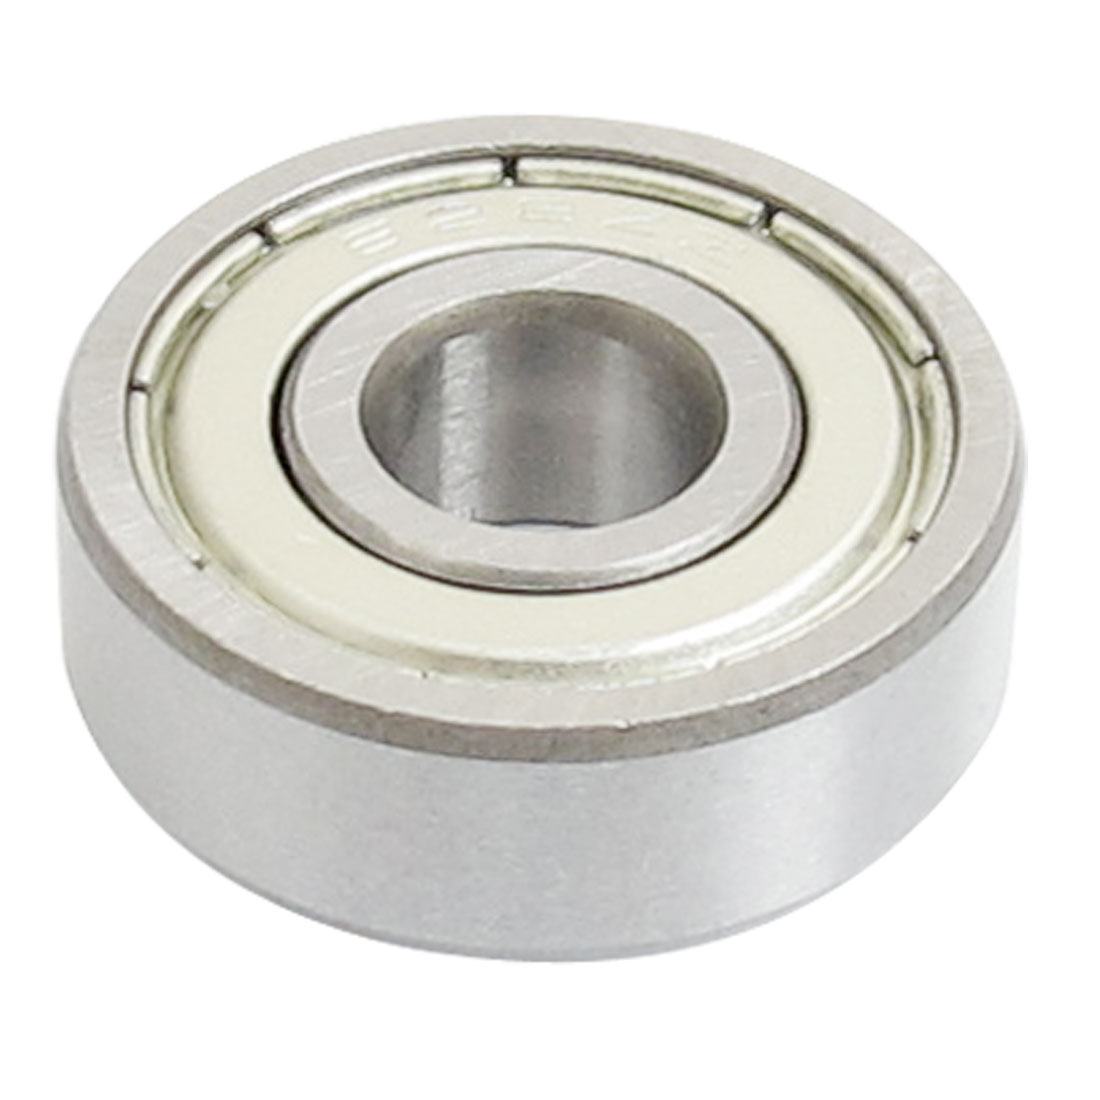 8 x 24 x 8mm 628 Shielded Miniature Deep Groove Radial Ball Bearing